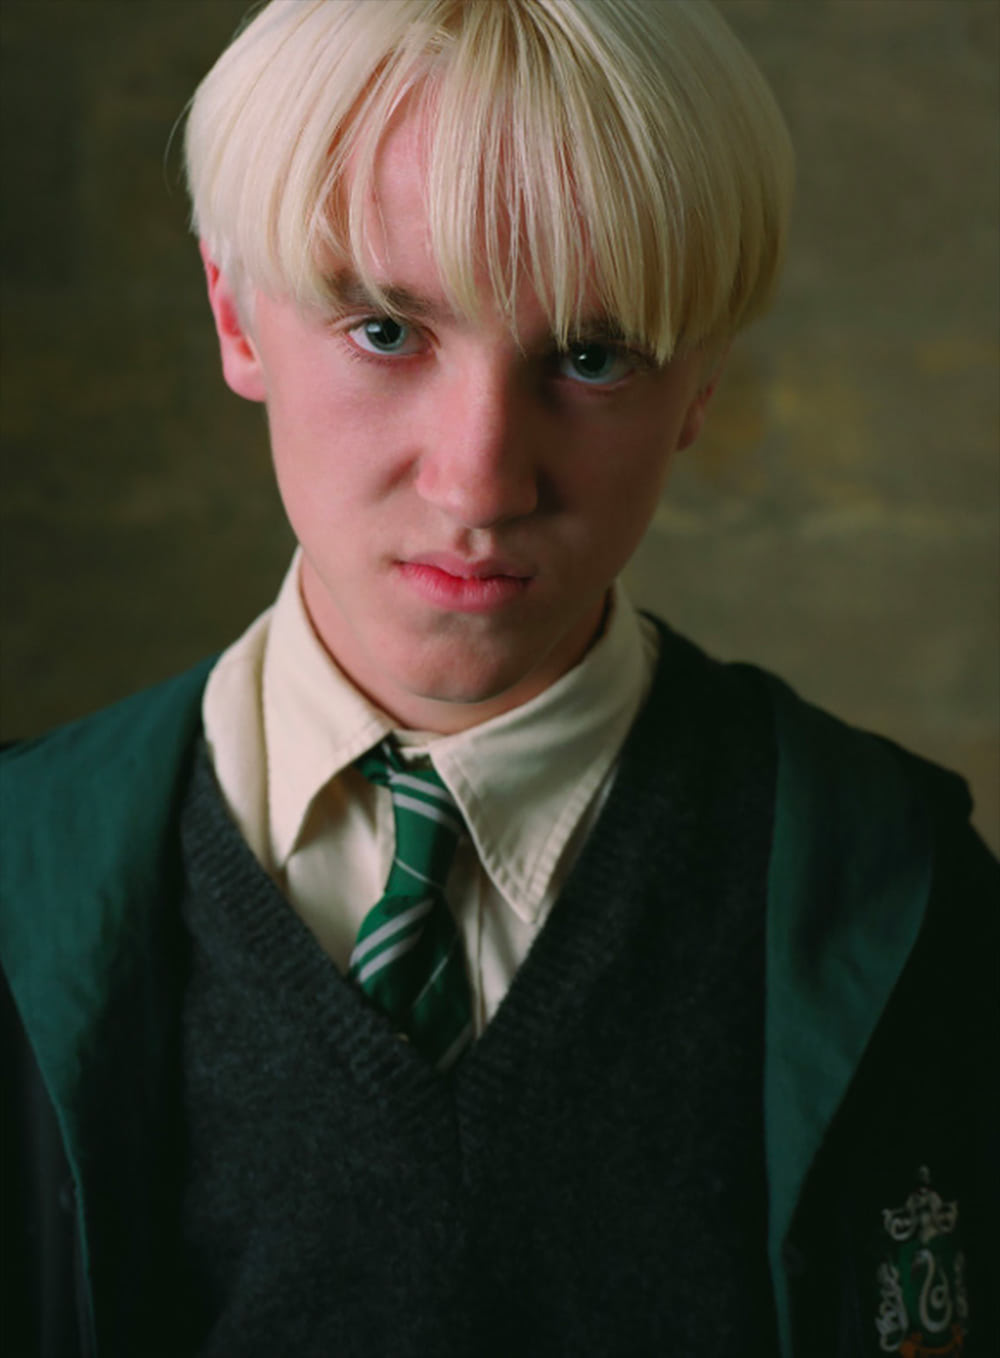 Portrait of Draco Malfoy